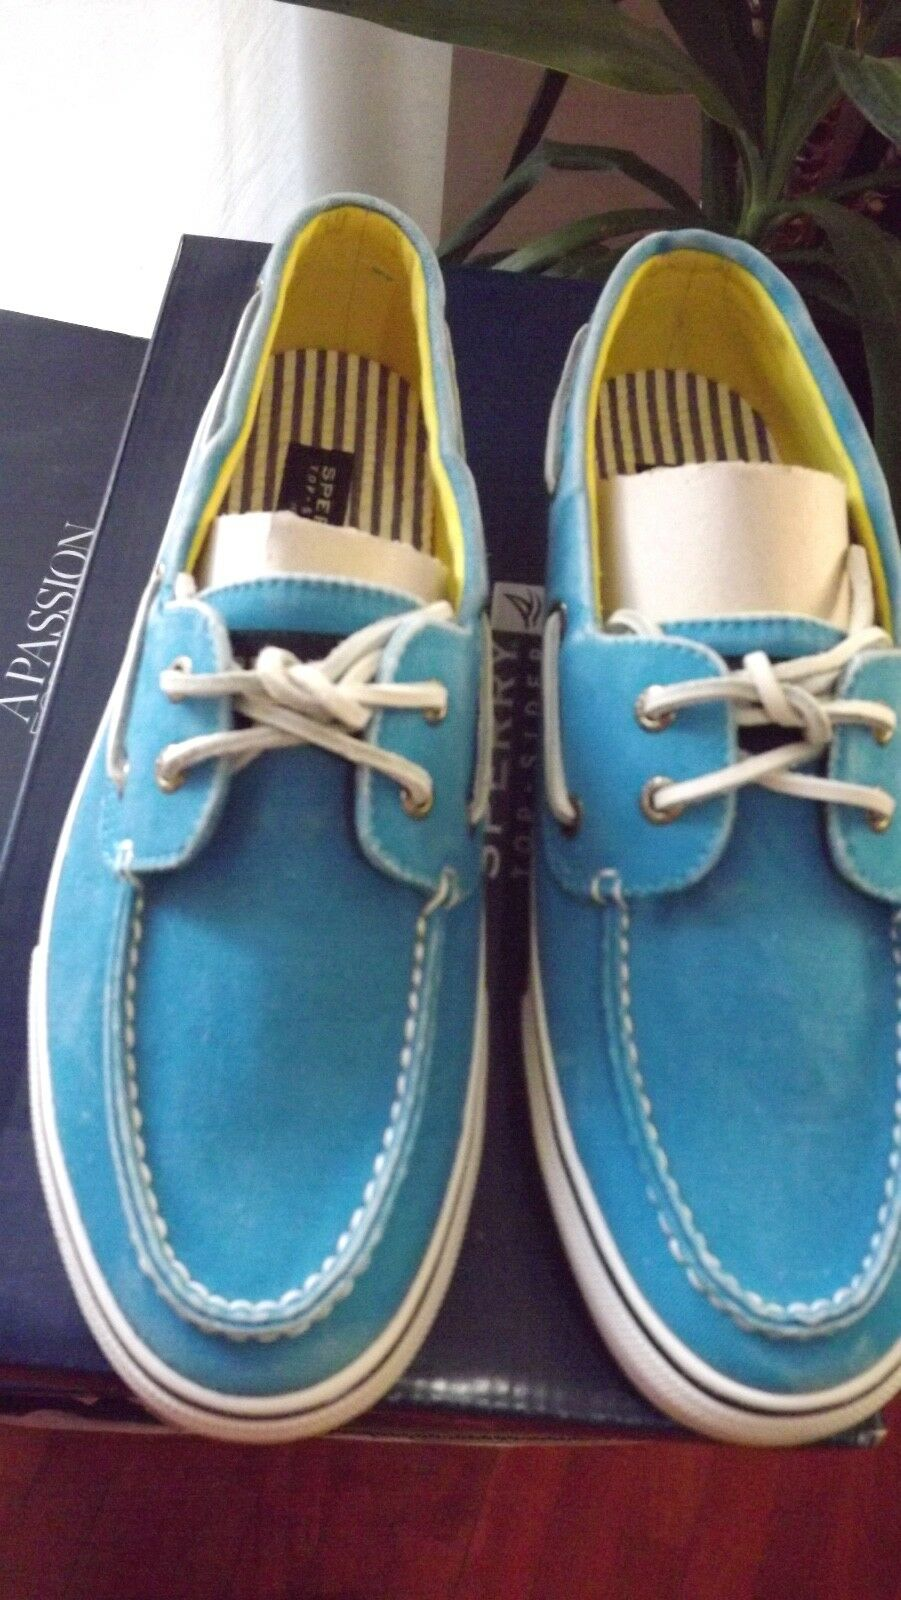 SPERRY shoes DA BARCA MARE NUOVE IN TELA CON PARA SOTTO 85,00 CARTELLINO 43,5